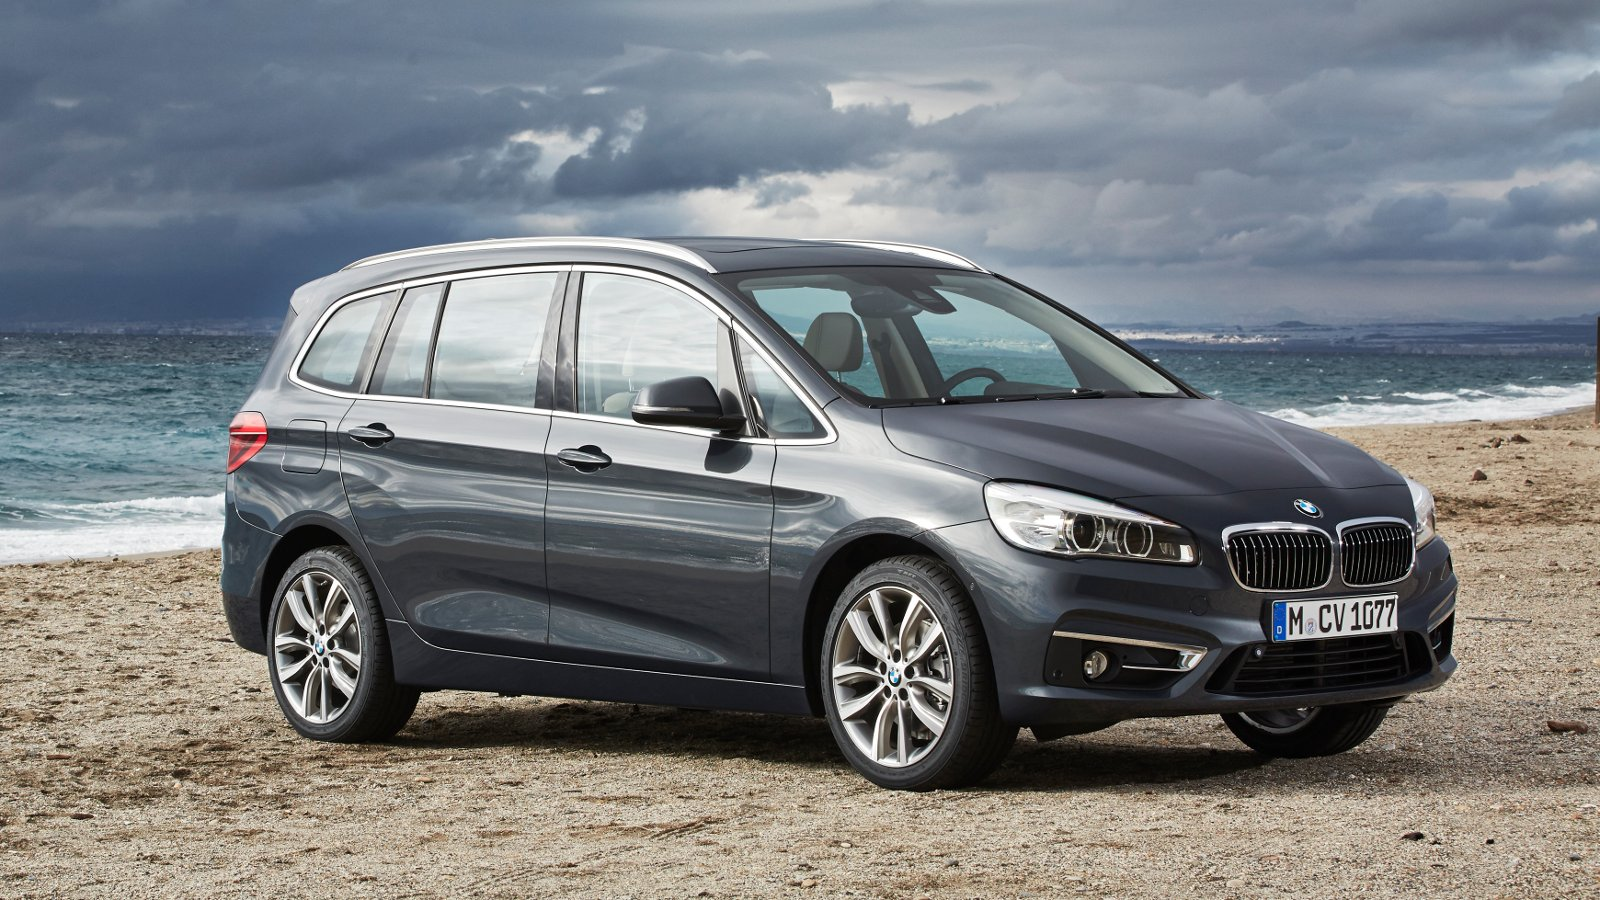 BMW Série 2 Gran Tourer: 7 places en option